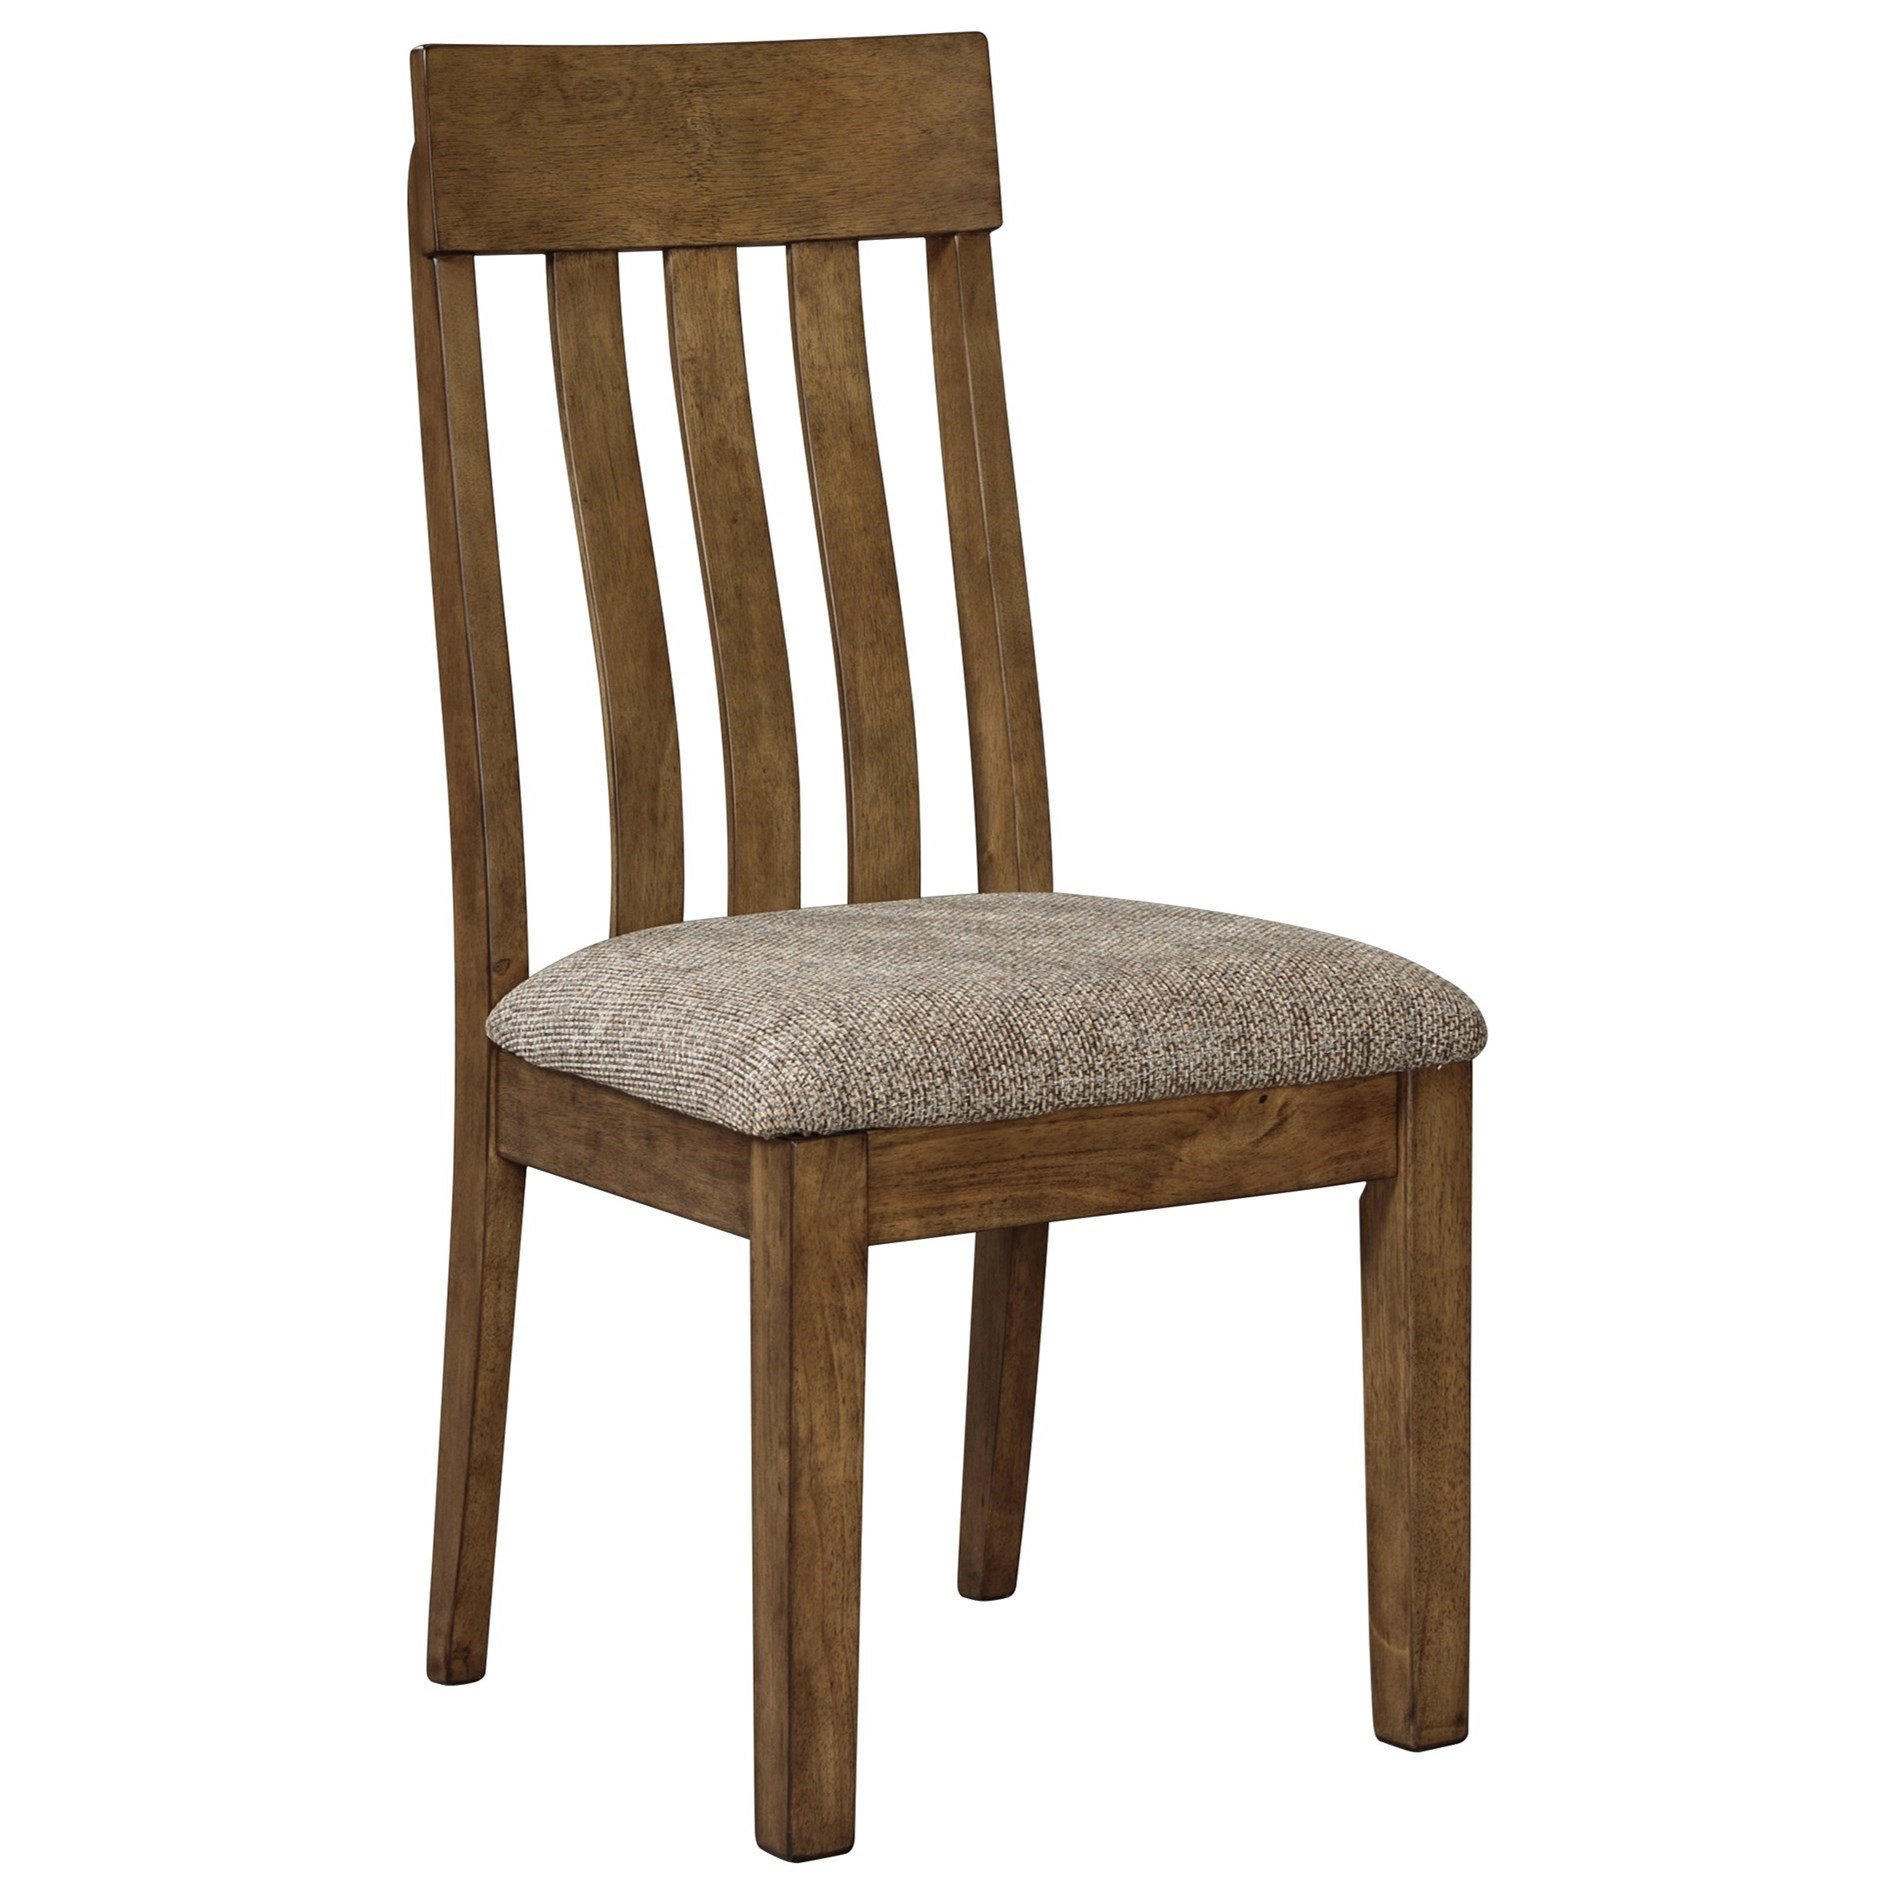 Benchcraft Flaybern Dining Upholstered Side Chair - Item Number: D595-01